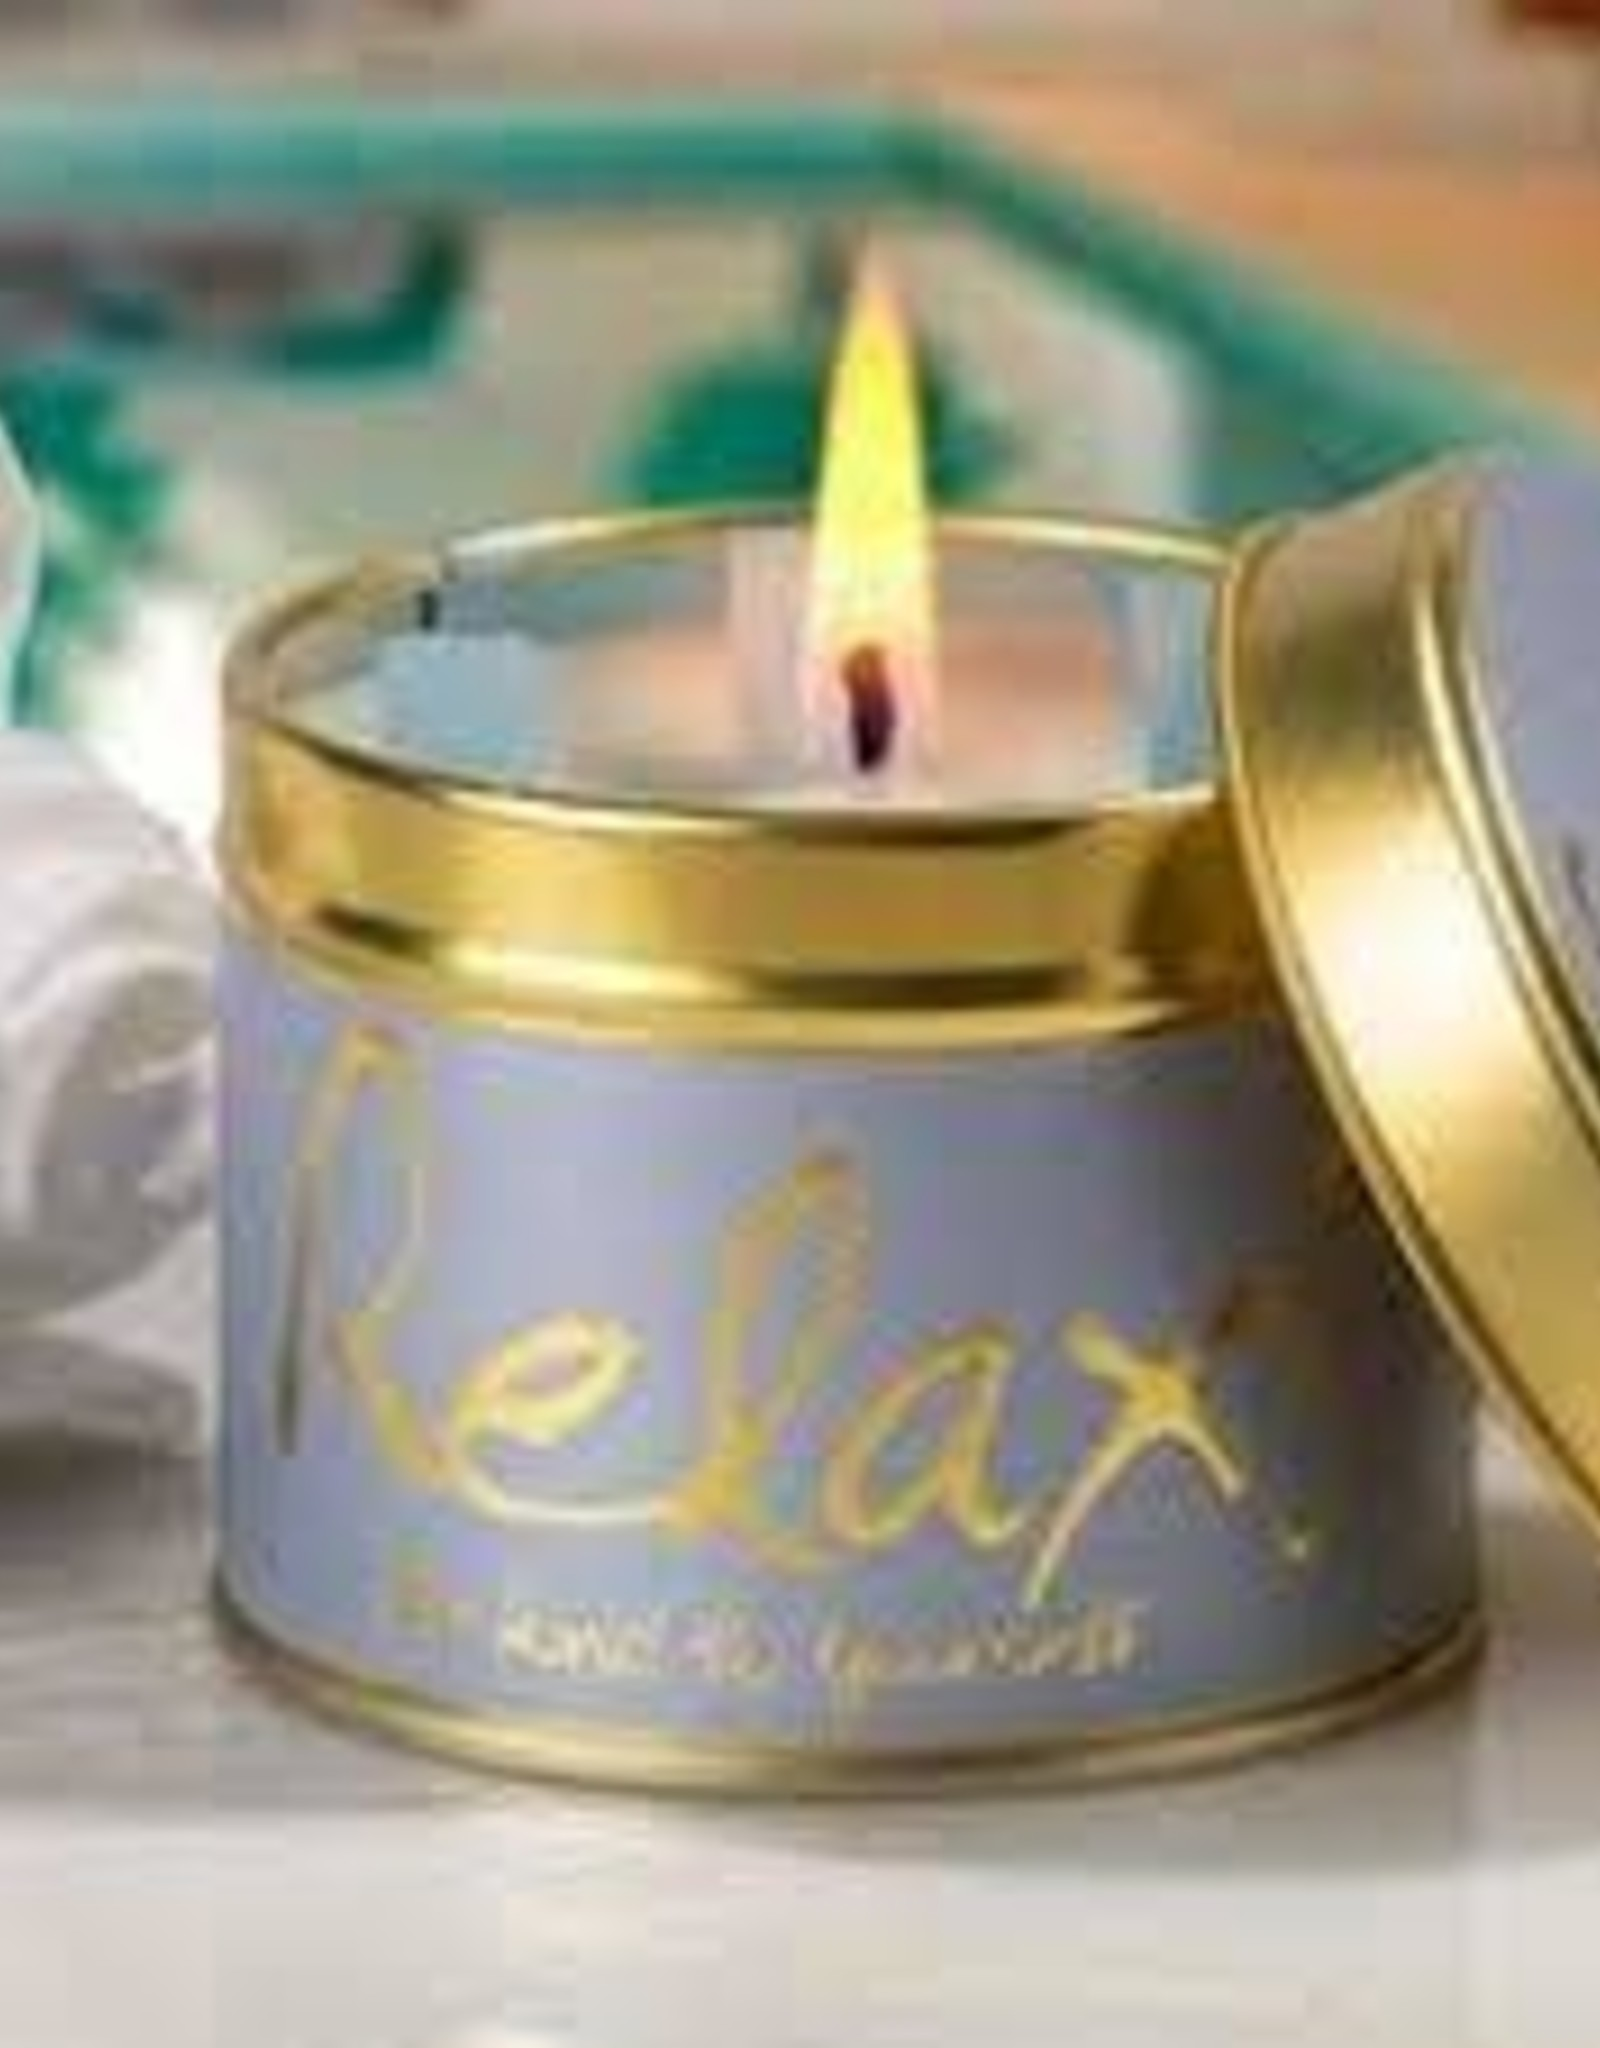 Lily-flame  Lily Flame  | Relax